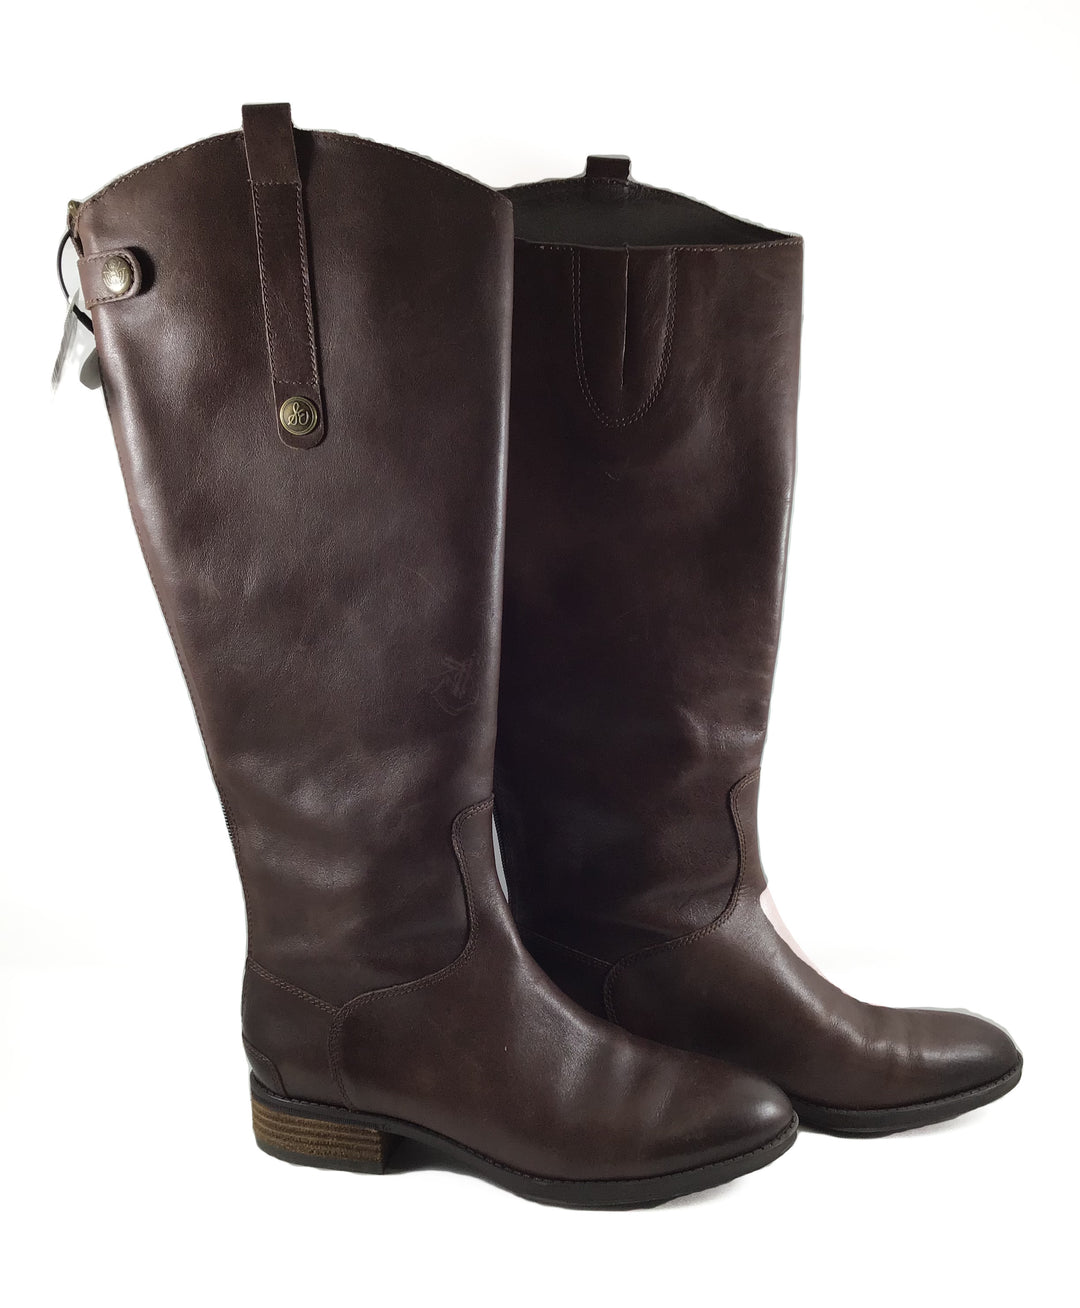 Primary Photo - BRAND: SAM EDELMAN <BR>STYLE: BOOTS KNEE <BR>COLOR: BROWN <BR>SIZE: 7 <BR>SKU: 213-213143-6684